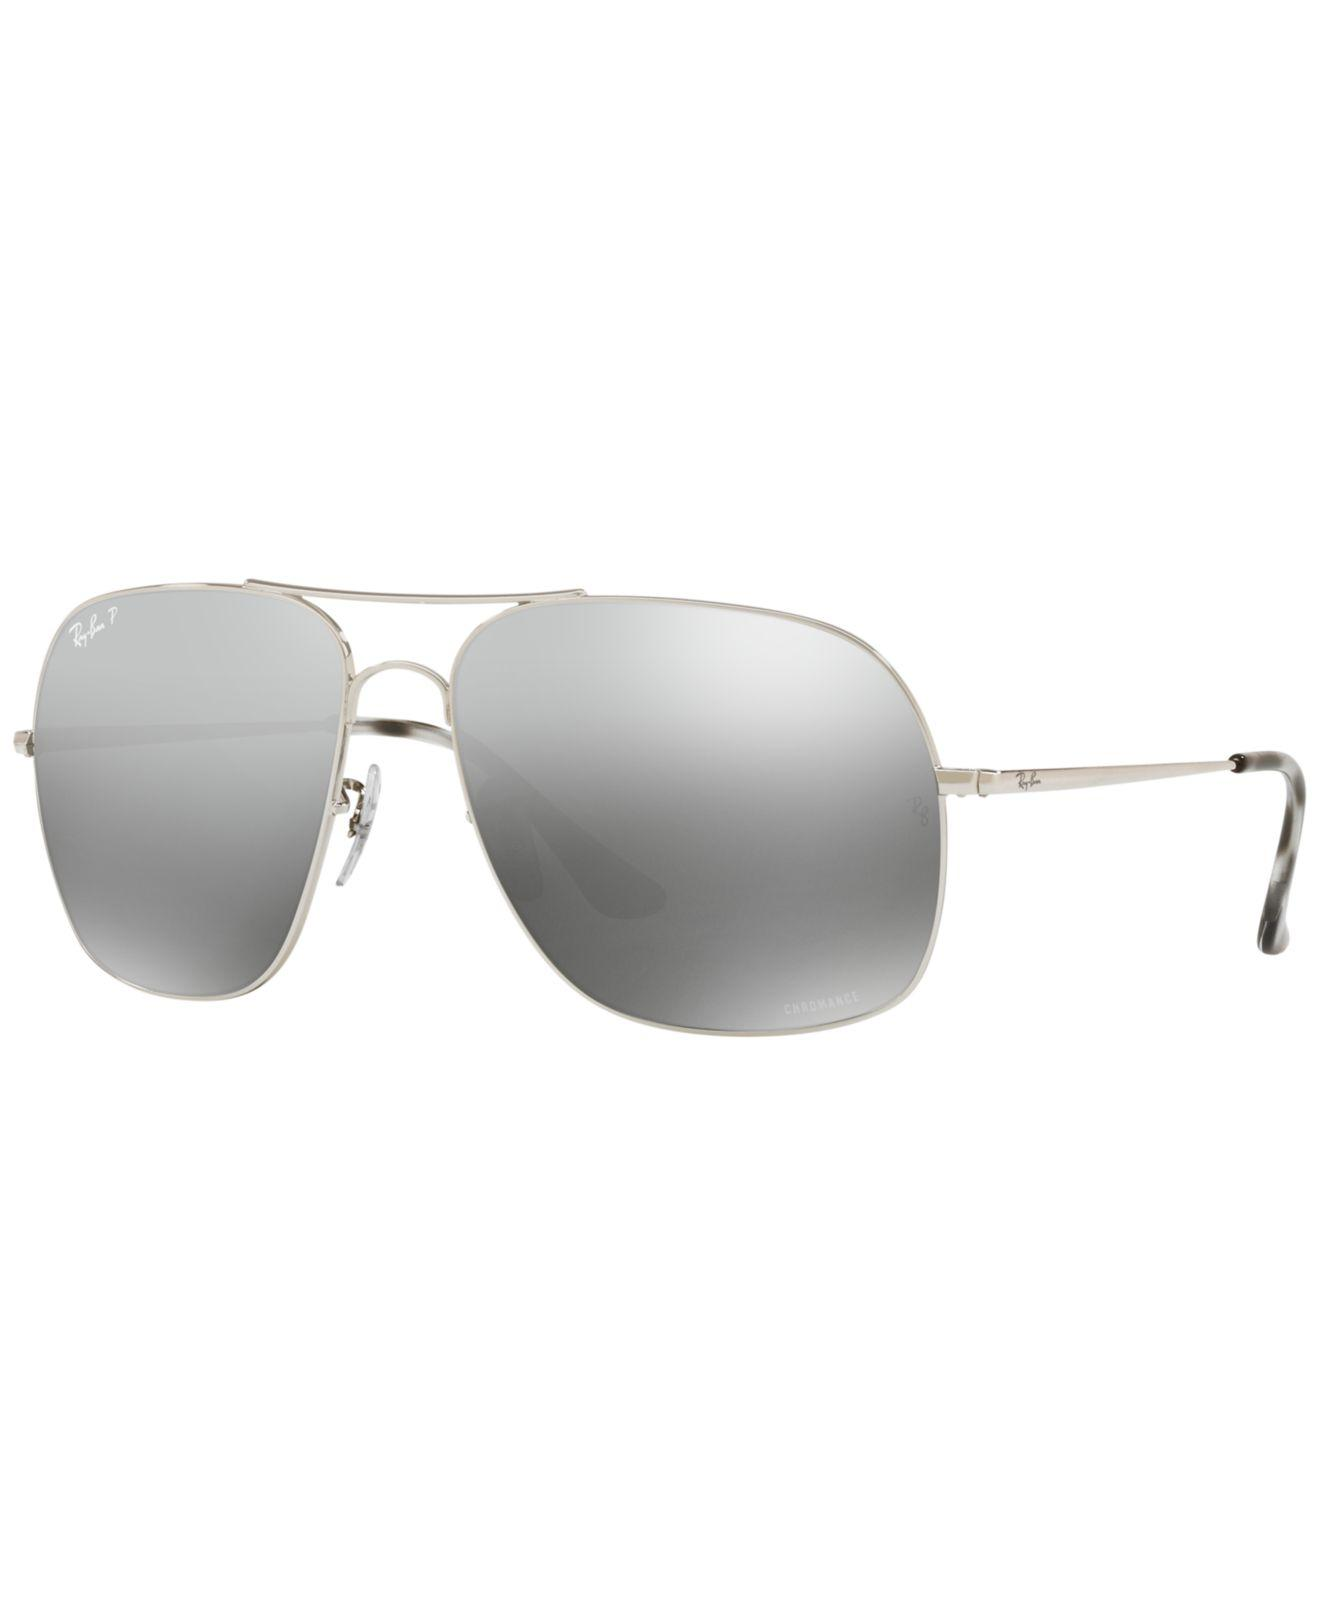 7d2a03e2e85 Ray-Ban. Men s Gray Polarized Sunglasses